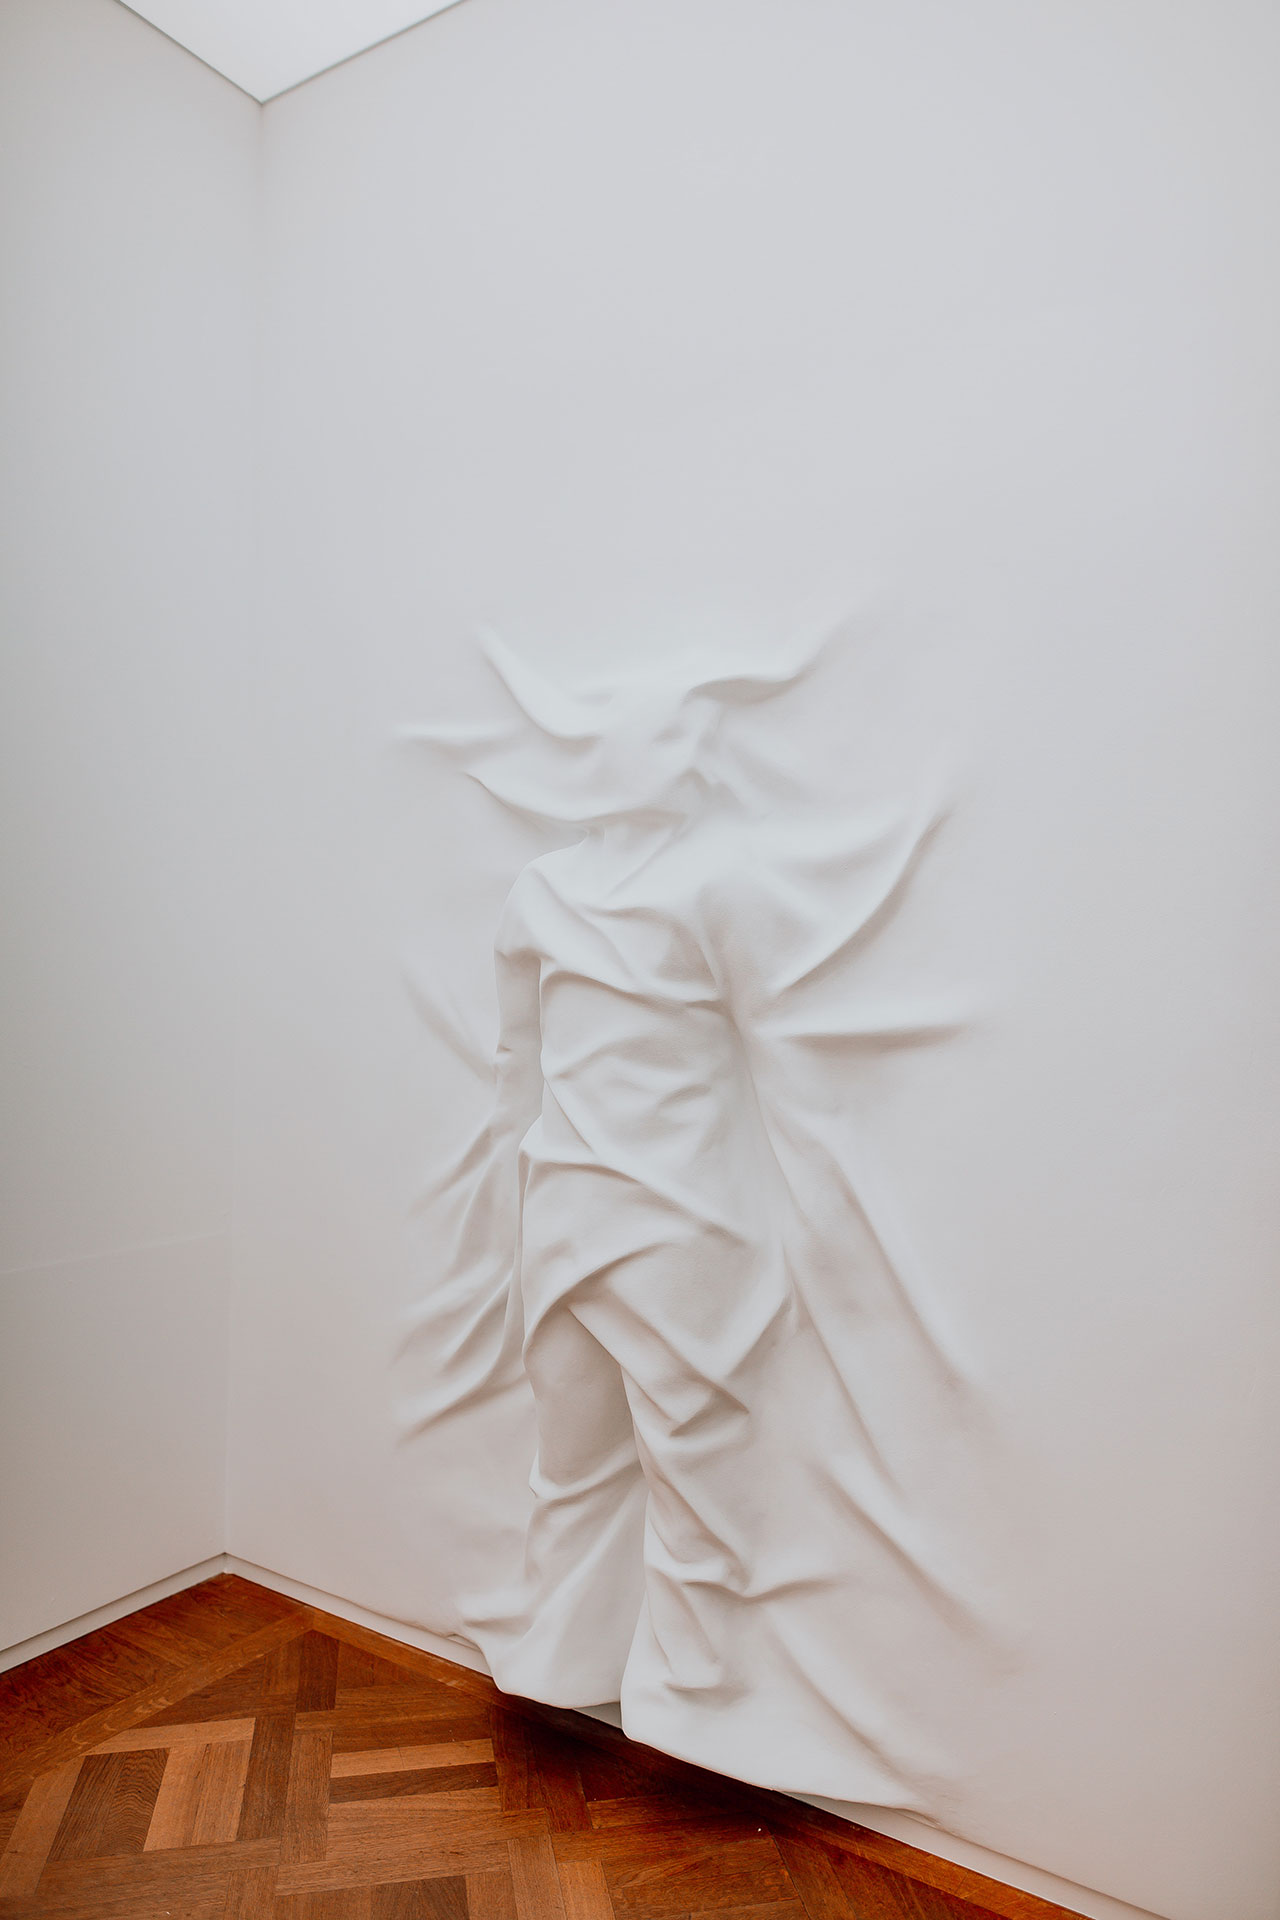 Daniel Arsham, Falling Clock. Exhibition view at Moco Museum in Amsterdam. Photo by Isabel Janssen.